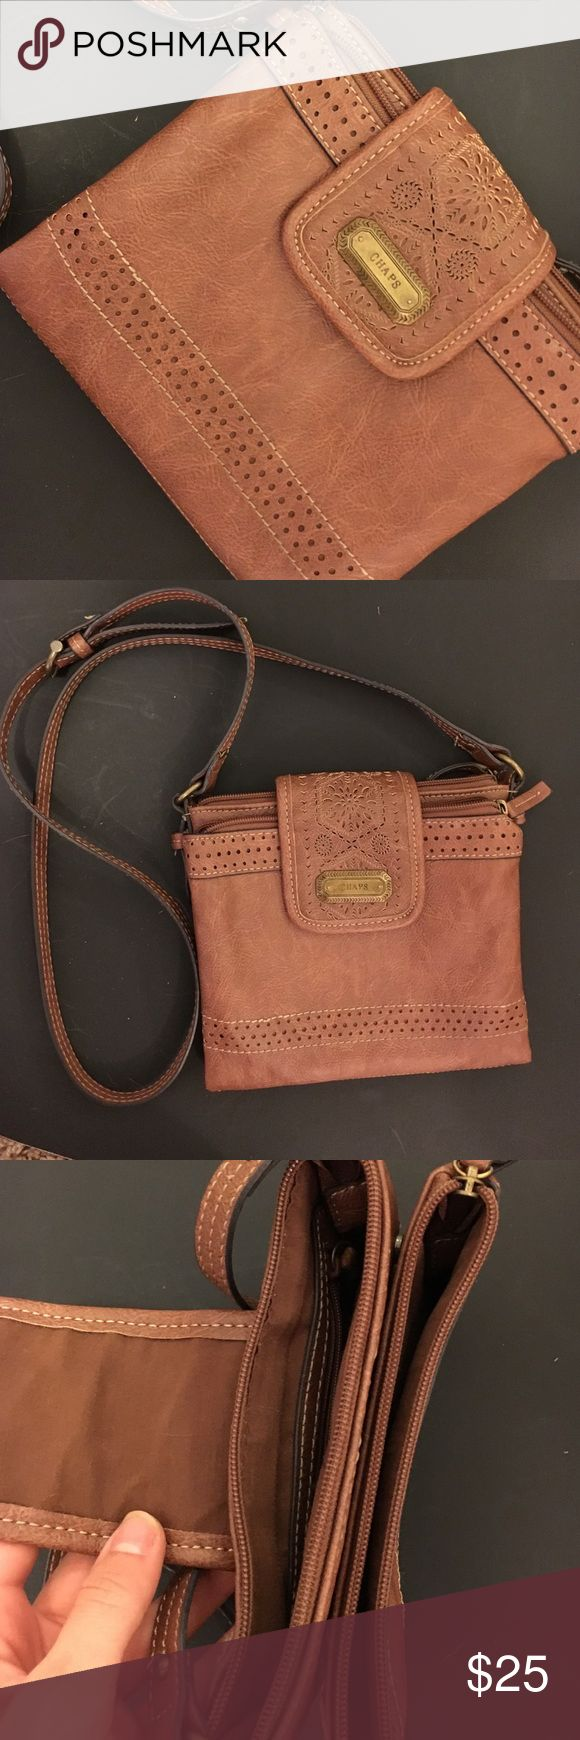 Chaps crossover bag/purse real leather NWOT Chaps crossover leather bag! Chaps Bags Crossbody Bags